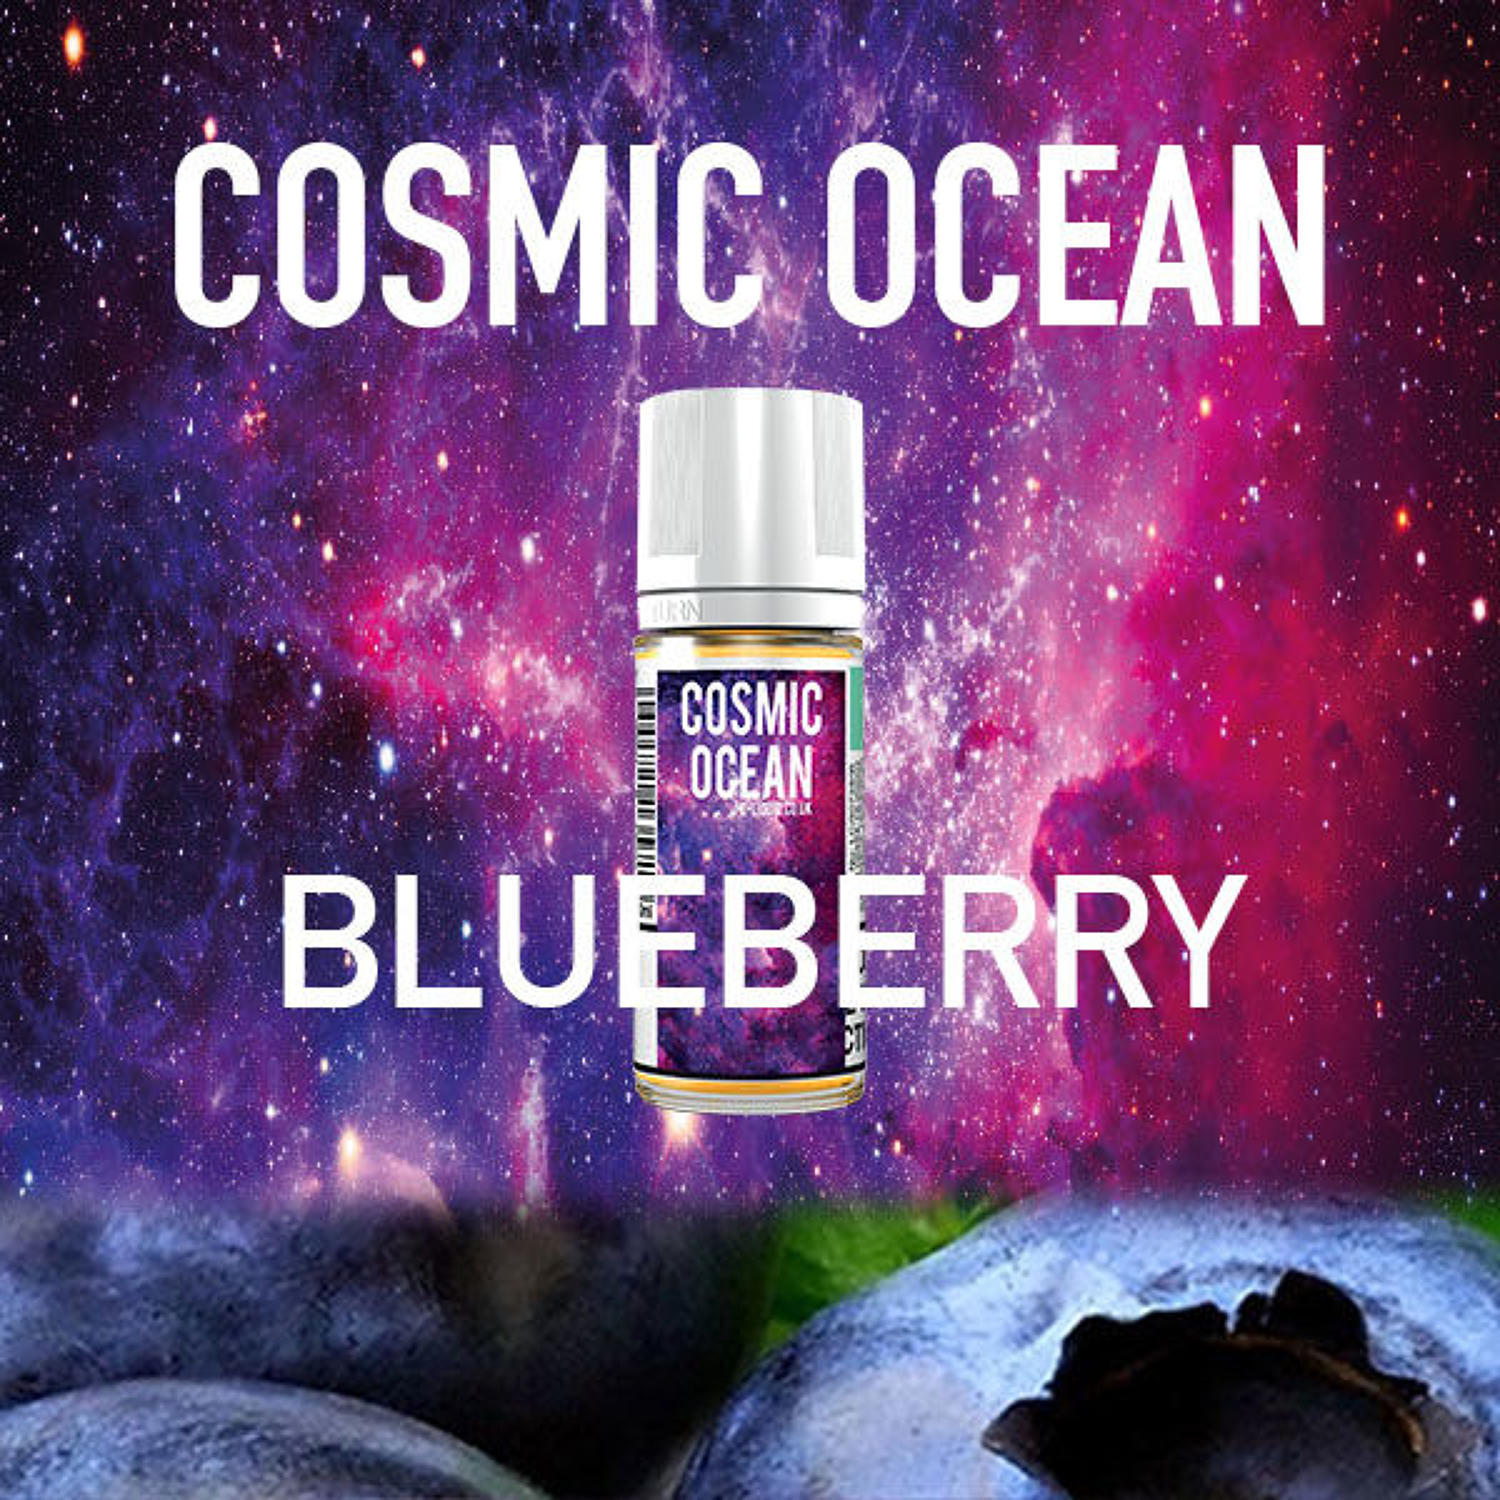 Cosmic Ocean - Blueberry 10ml